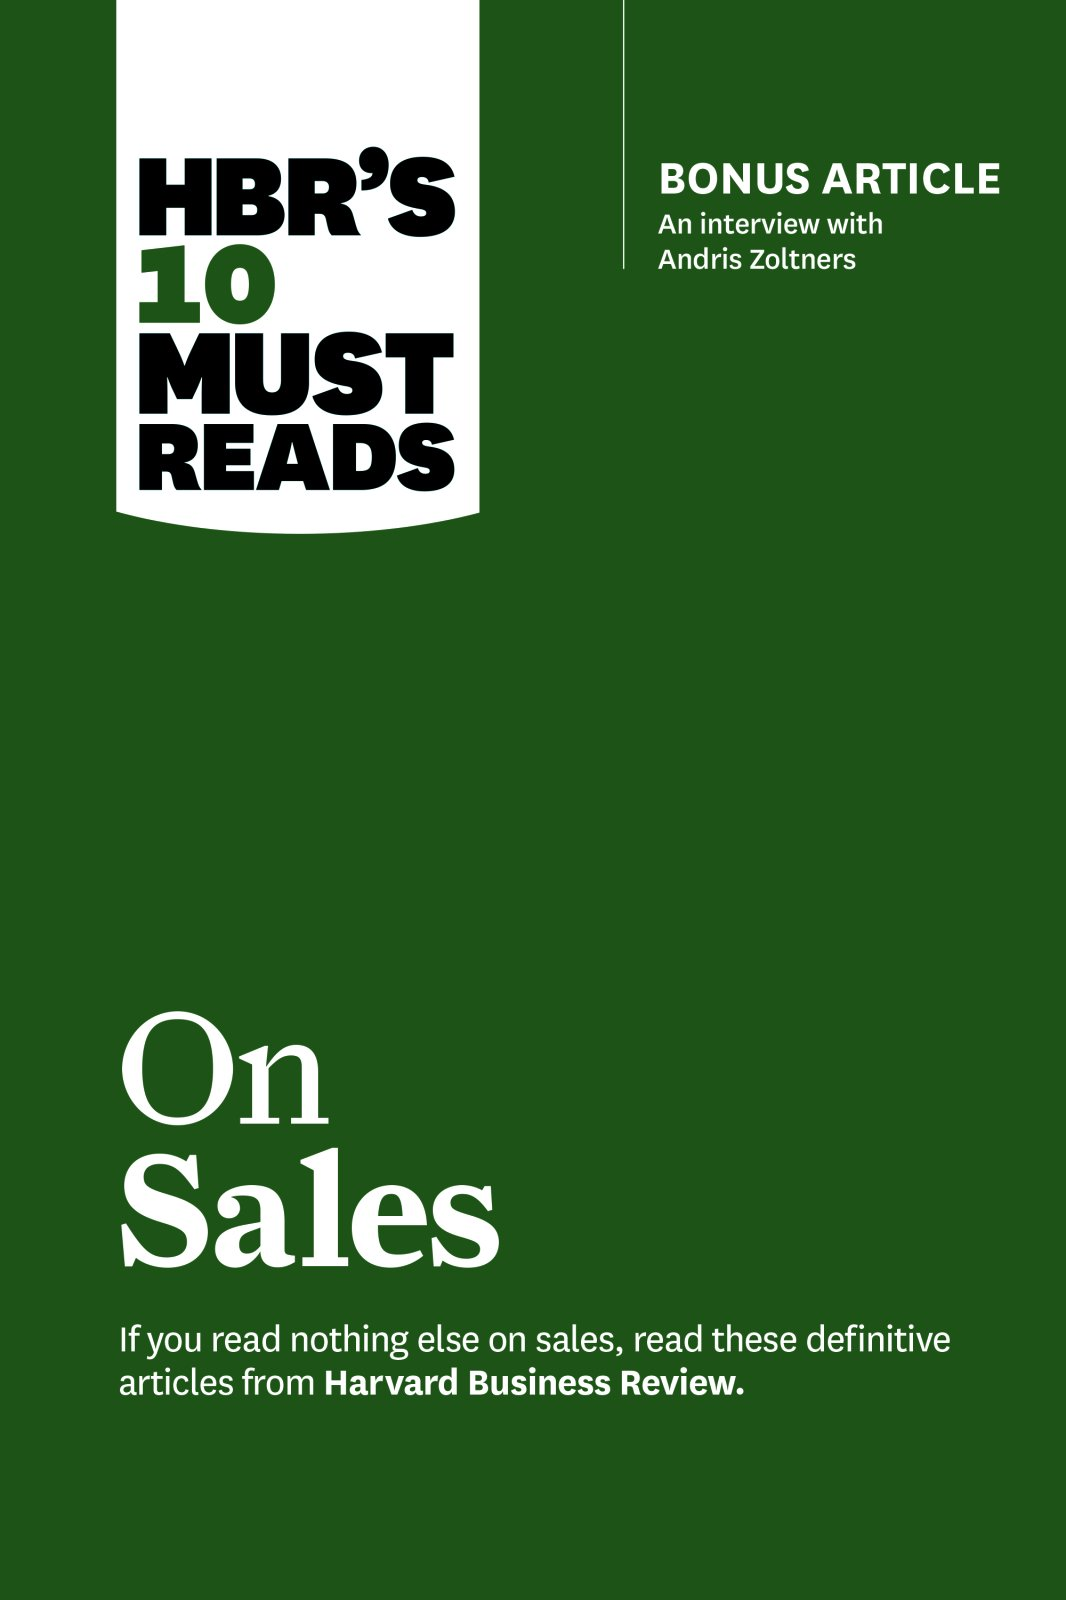 HBRS 10 Must Reads  On Sales